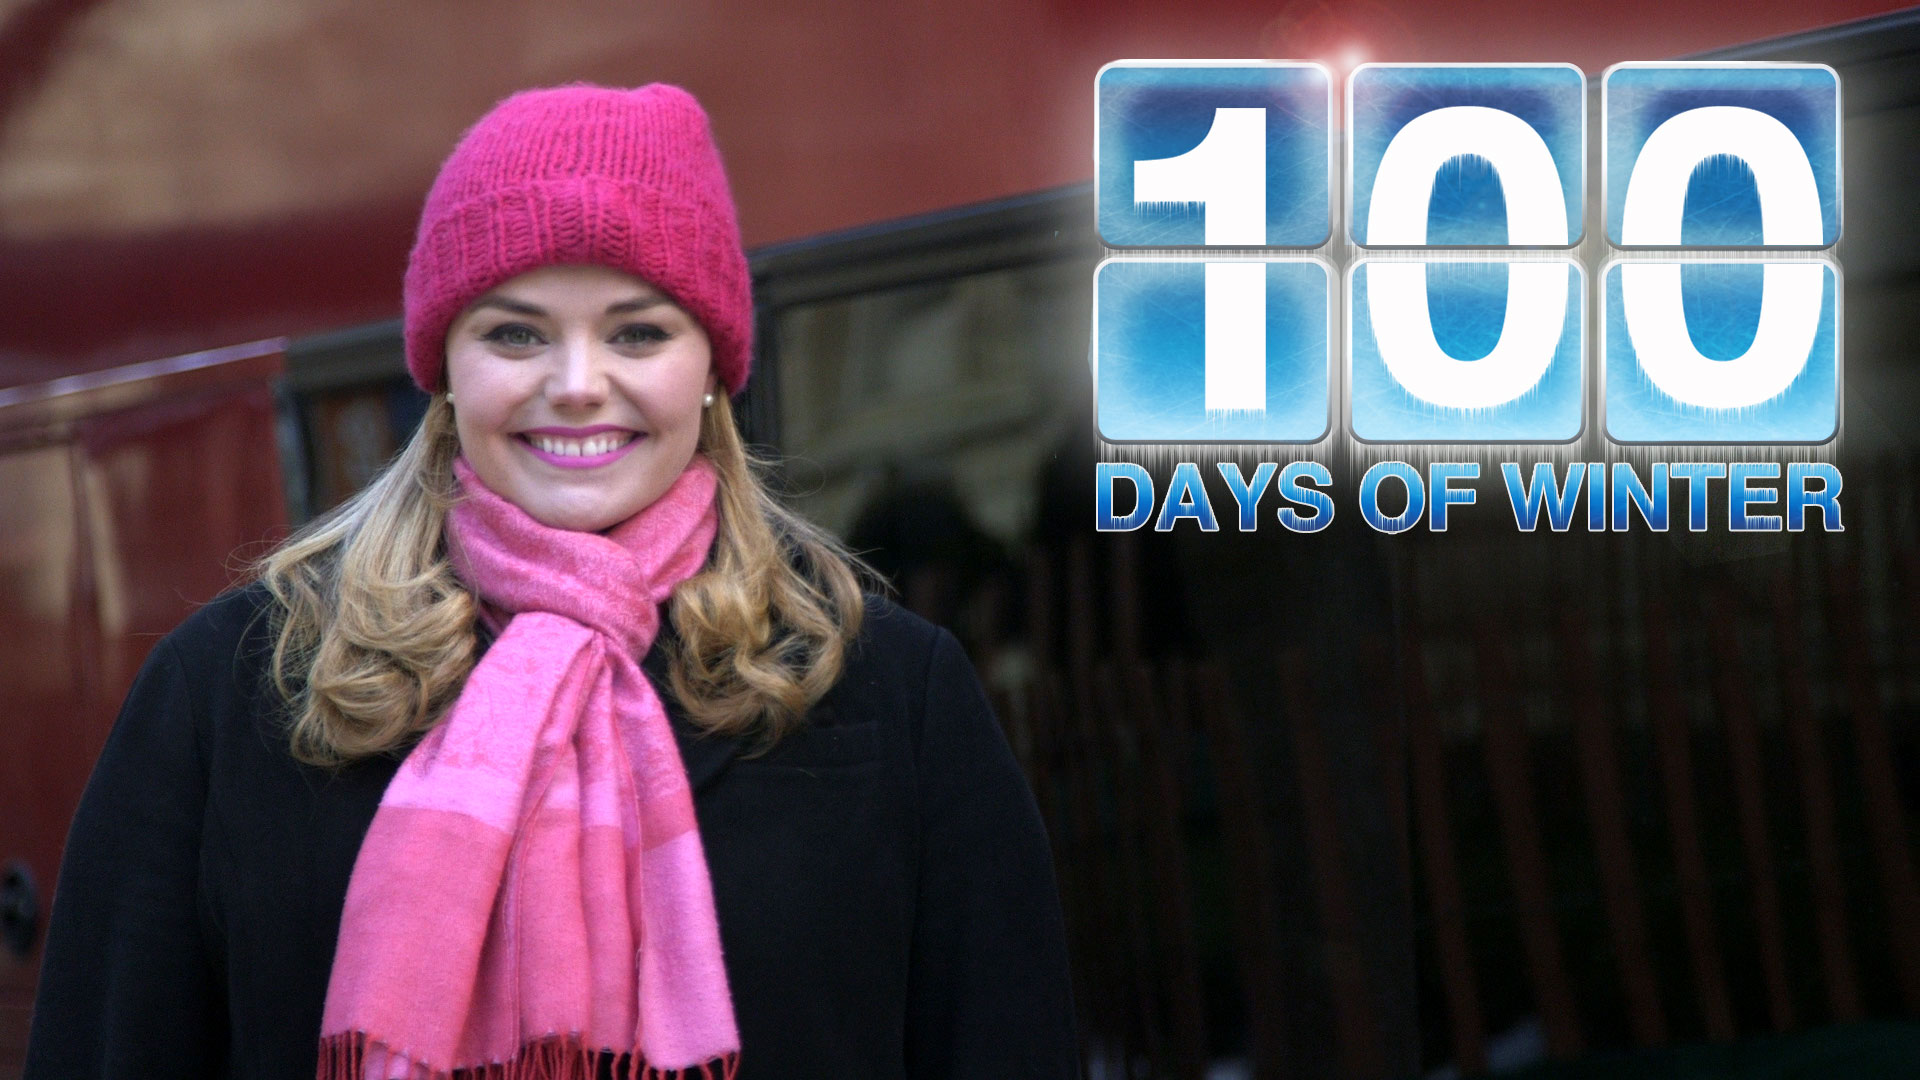 The Tour Guide – 100 Days of Winter